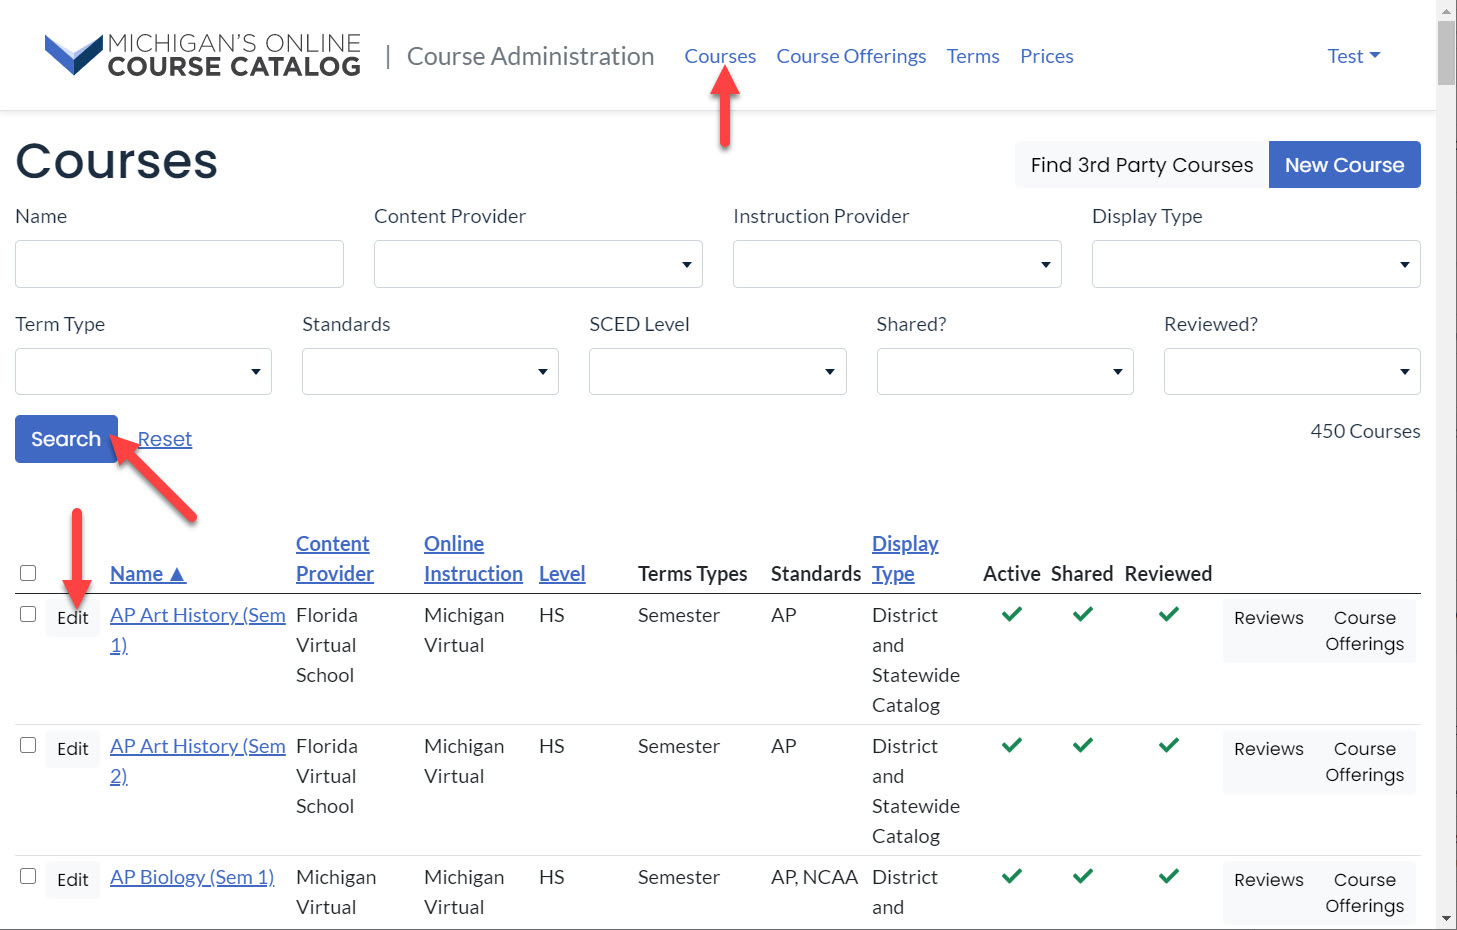 The Courses page is shown with an arrow pointing to the Courses option in the top menu bar, to the Search button below the drop-downs and finally to the Edit button next to the course listing in the results table.